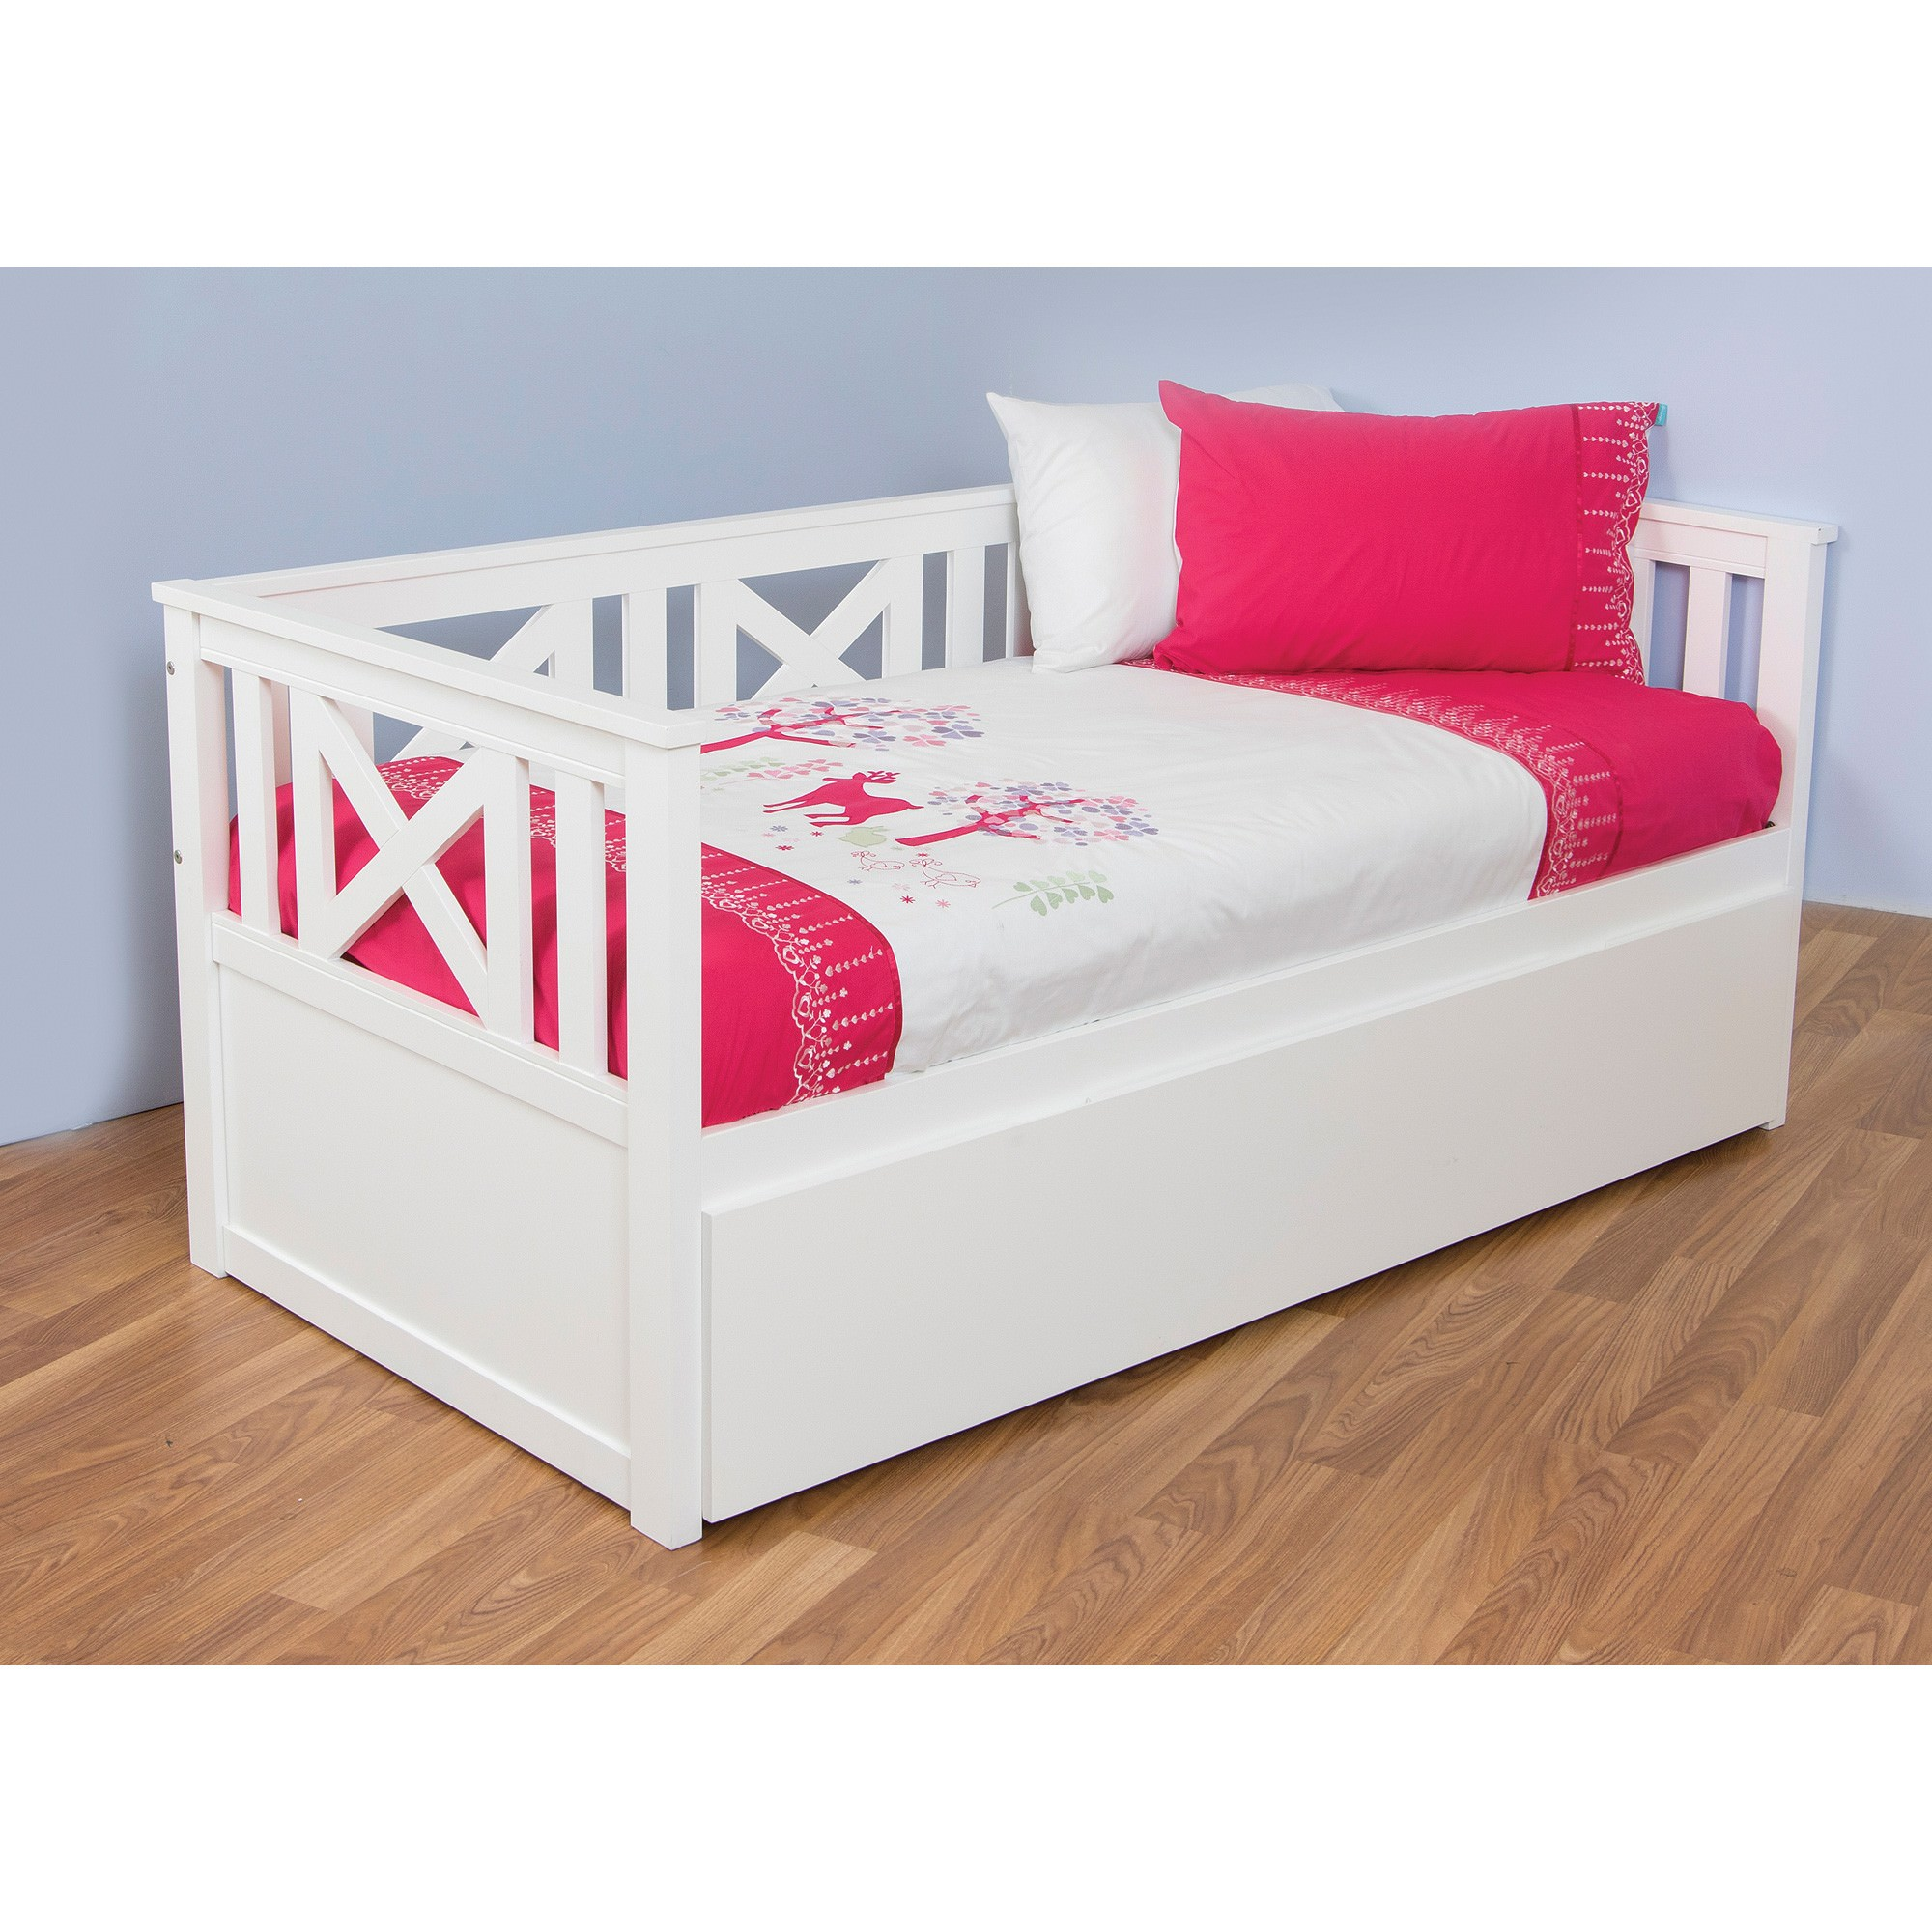 Madeleine Wooden Daybed, Single